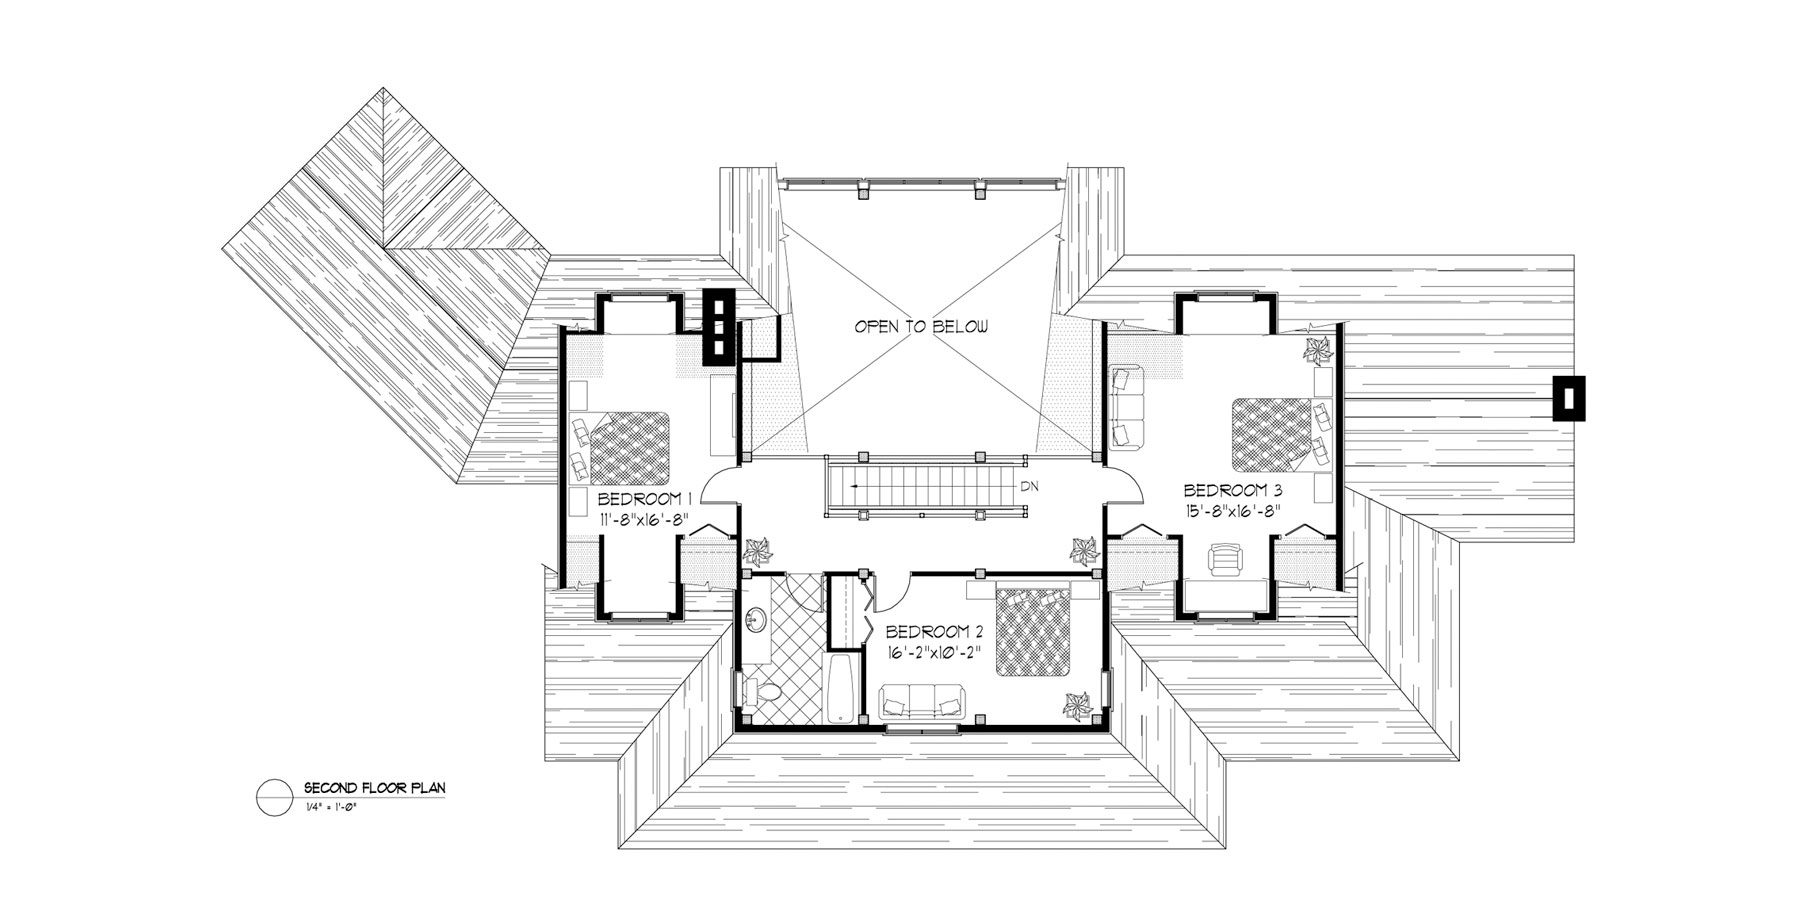 Normerica Timber Frames, House Plan, The Fremont 3582, Second Floor Layout